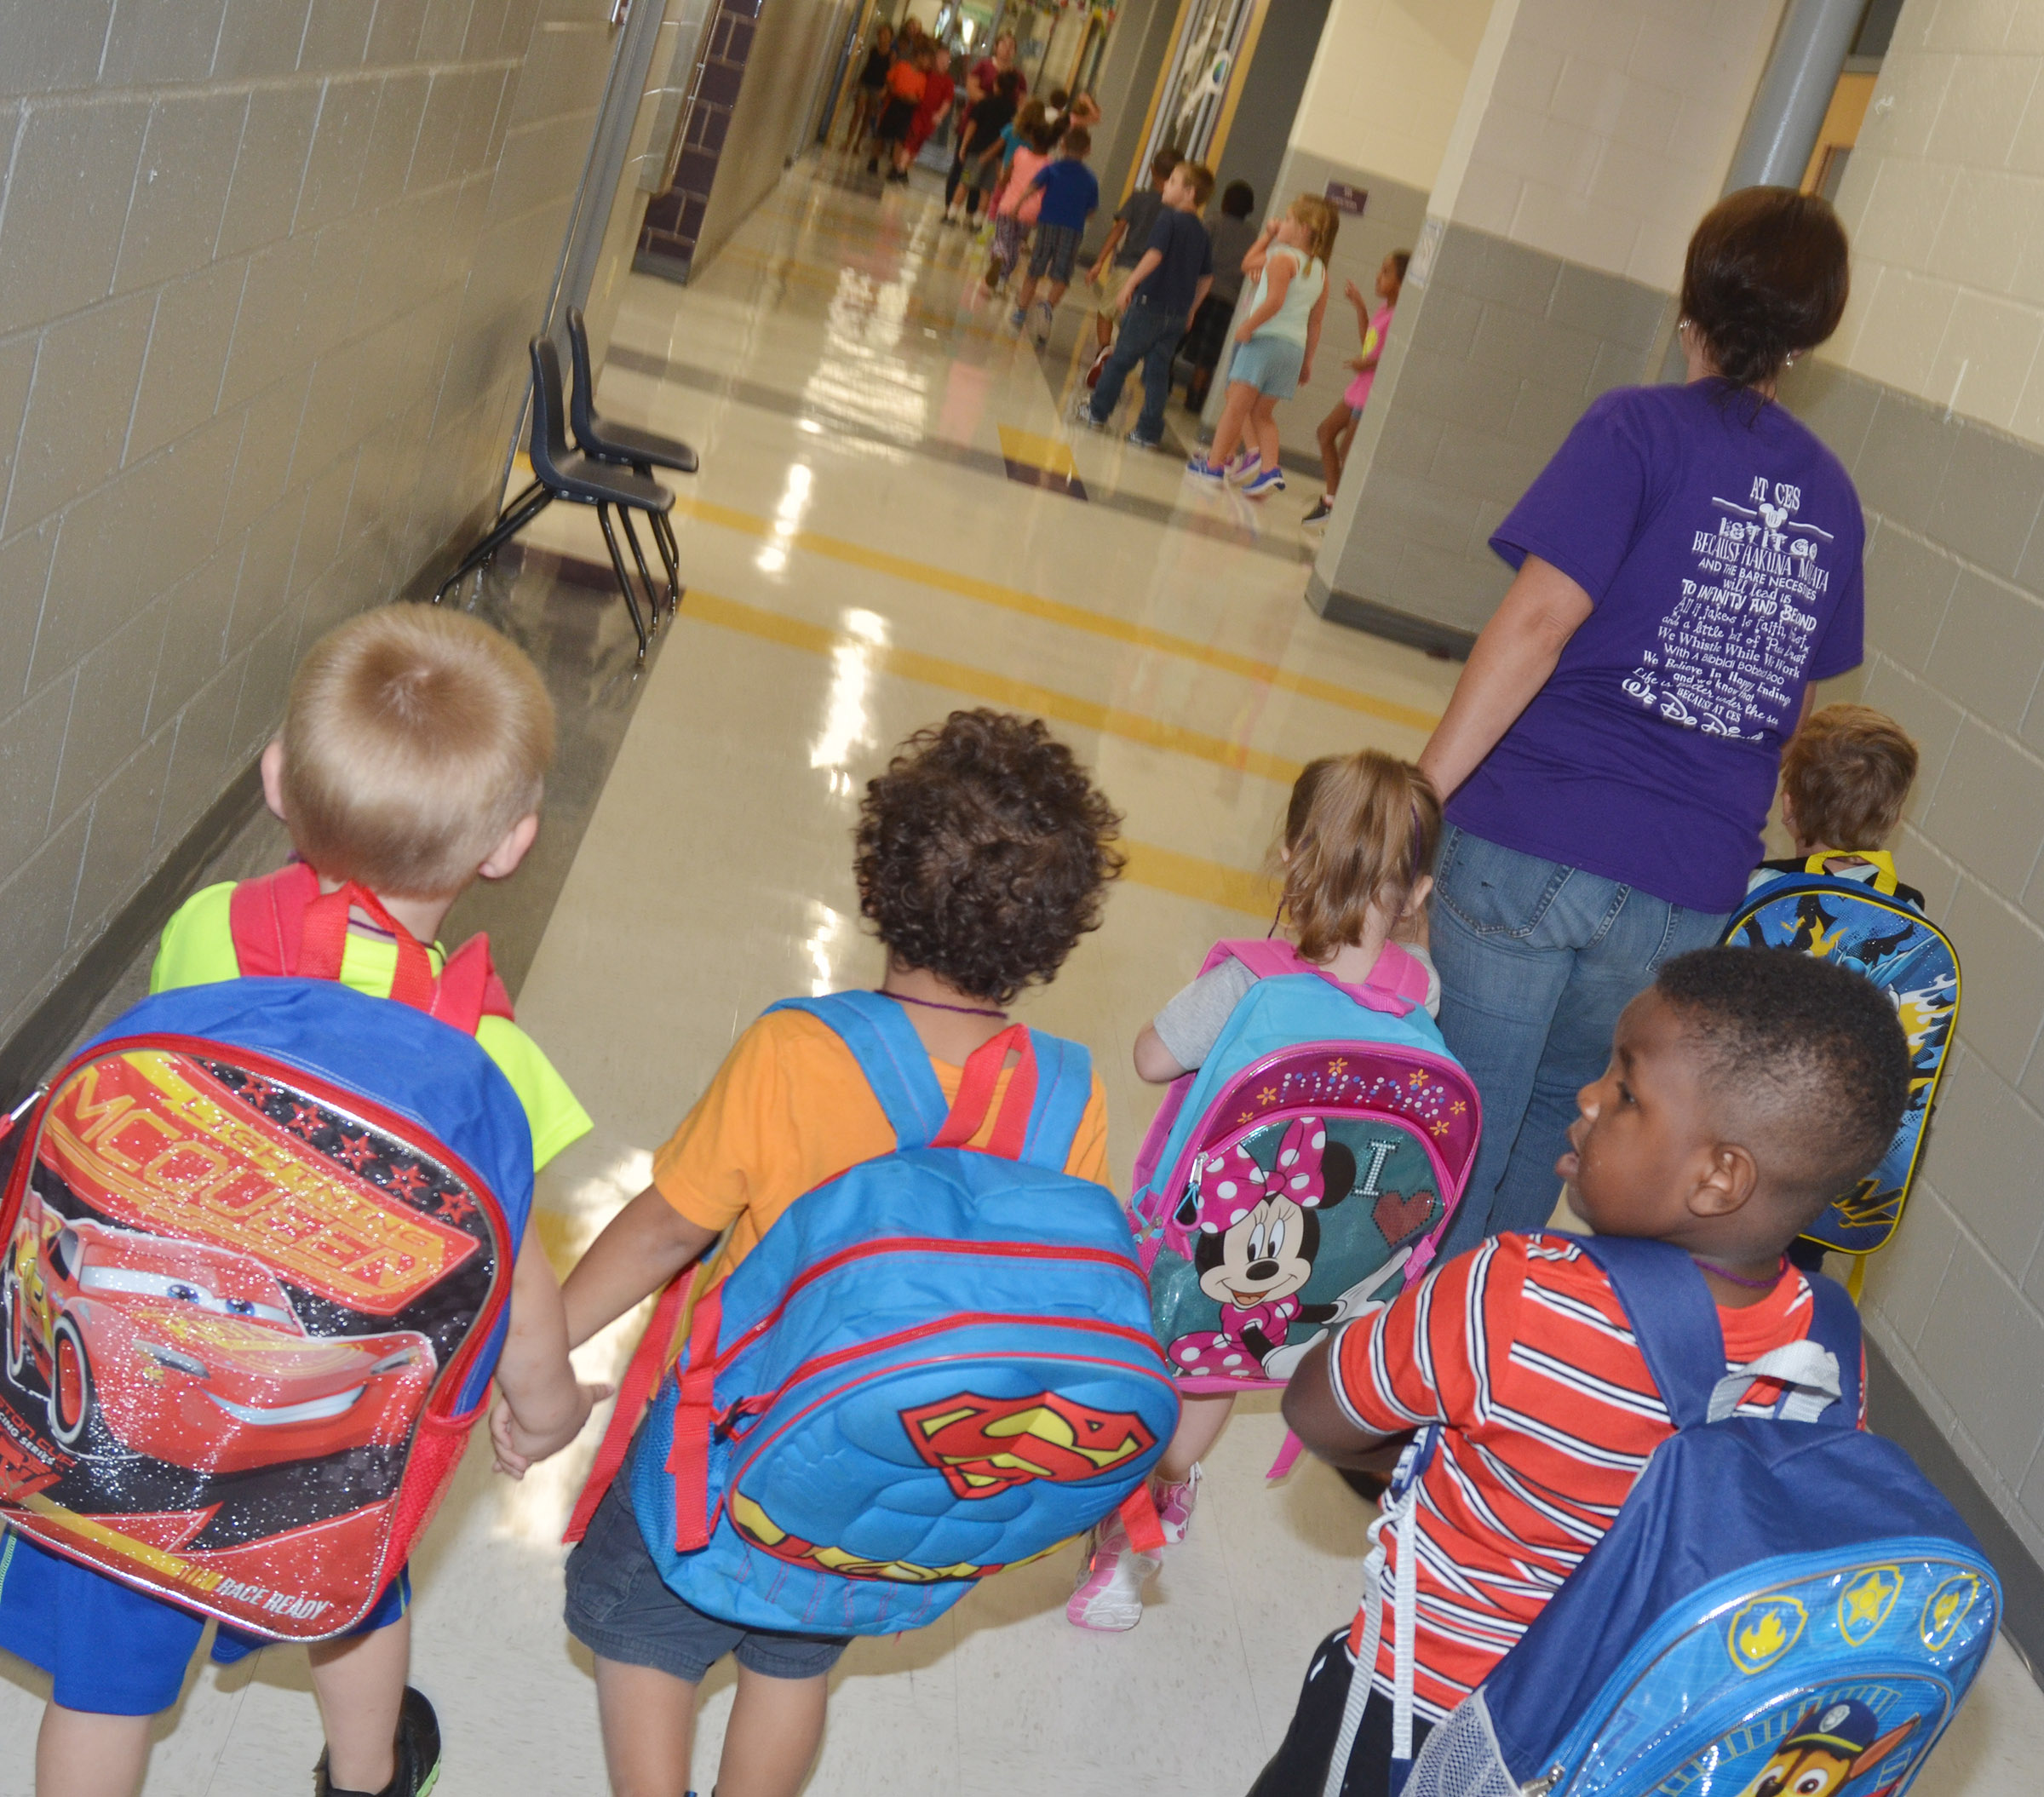 CES preschool assistant Beth Sandidge leads preschool students as they walk down the hallway to board the school bus.